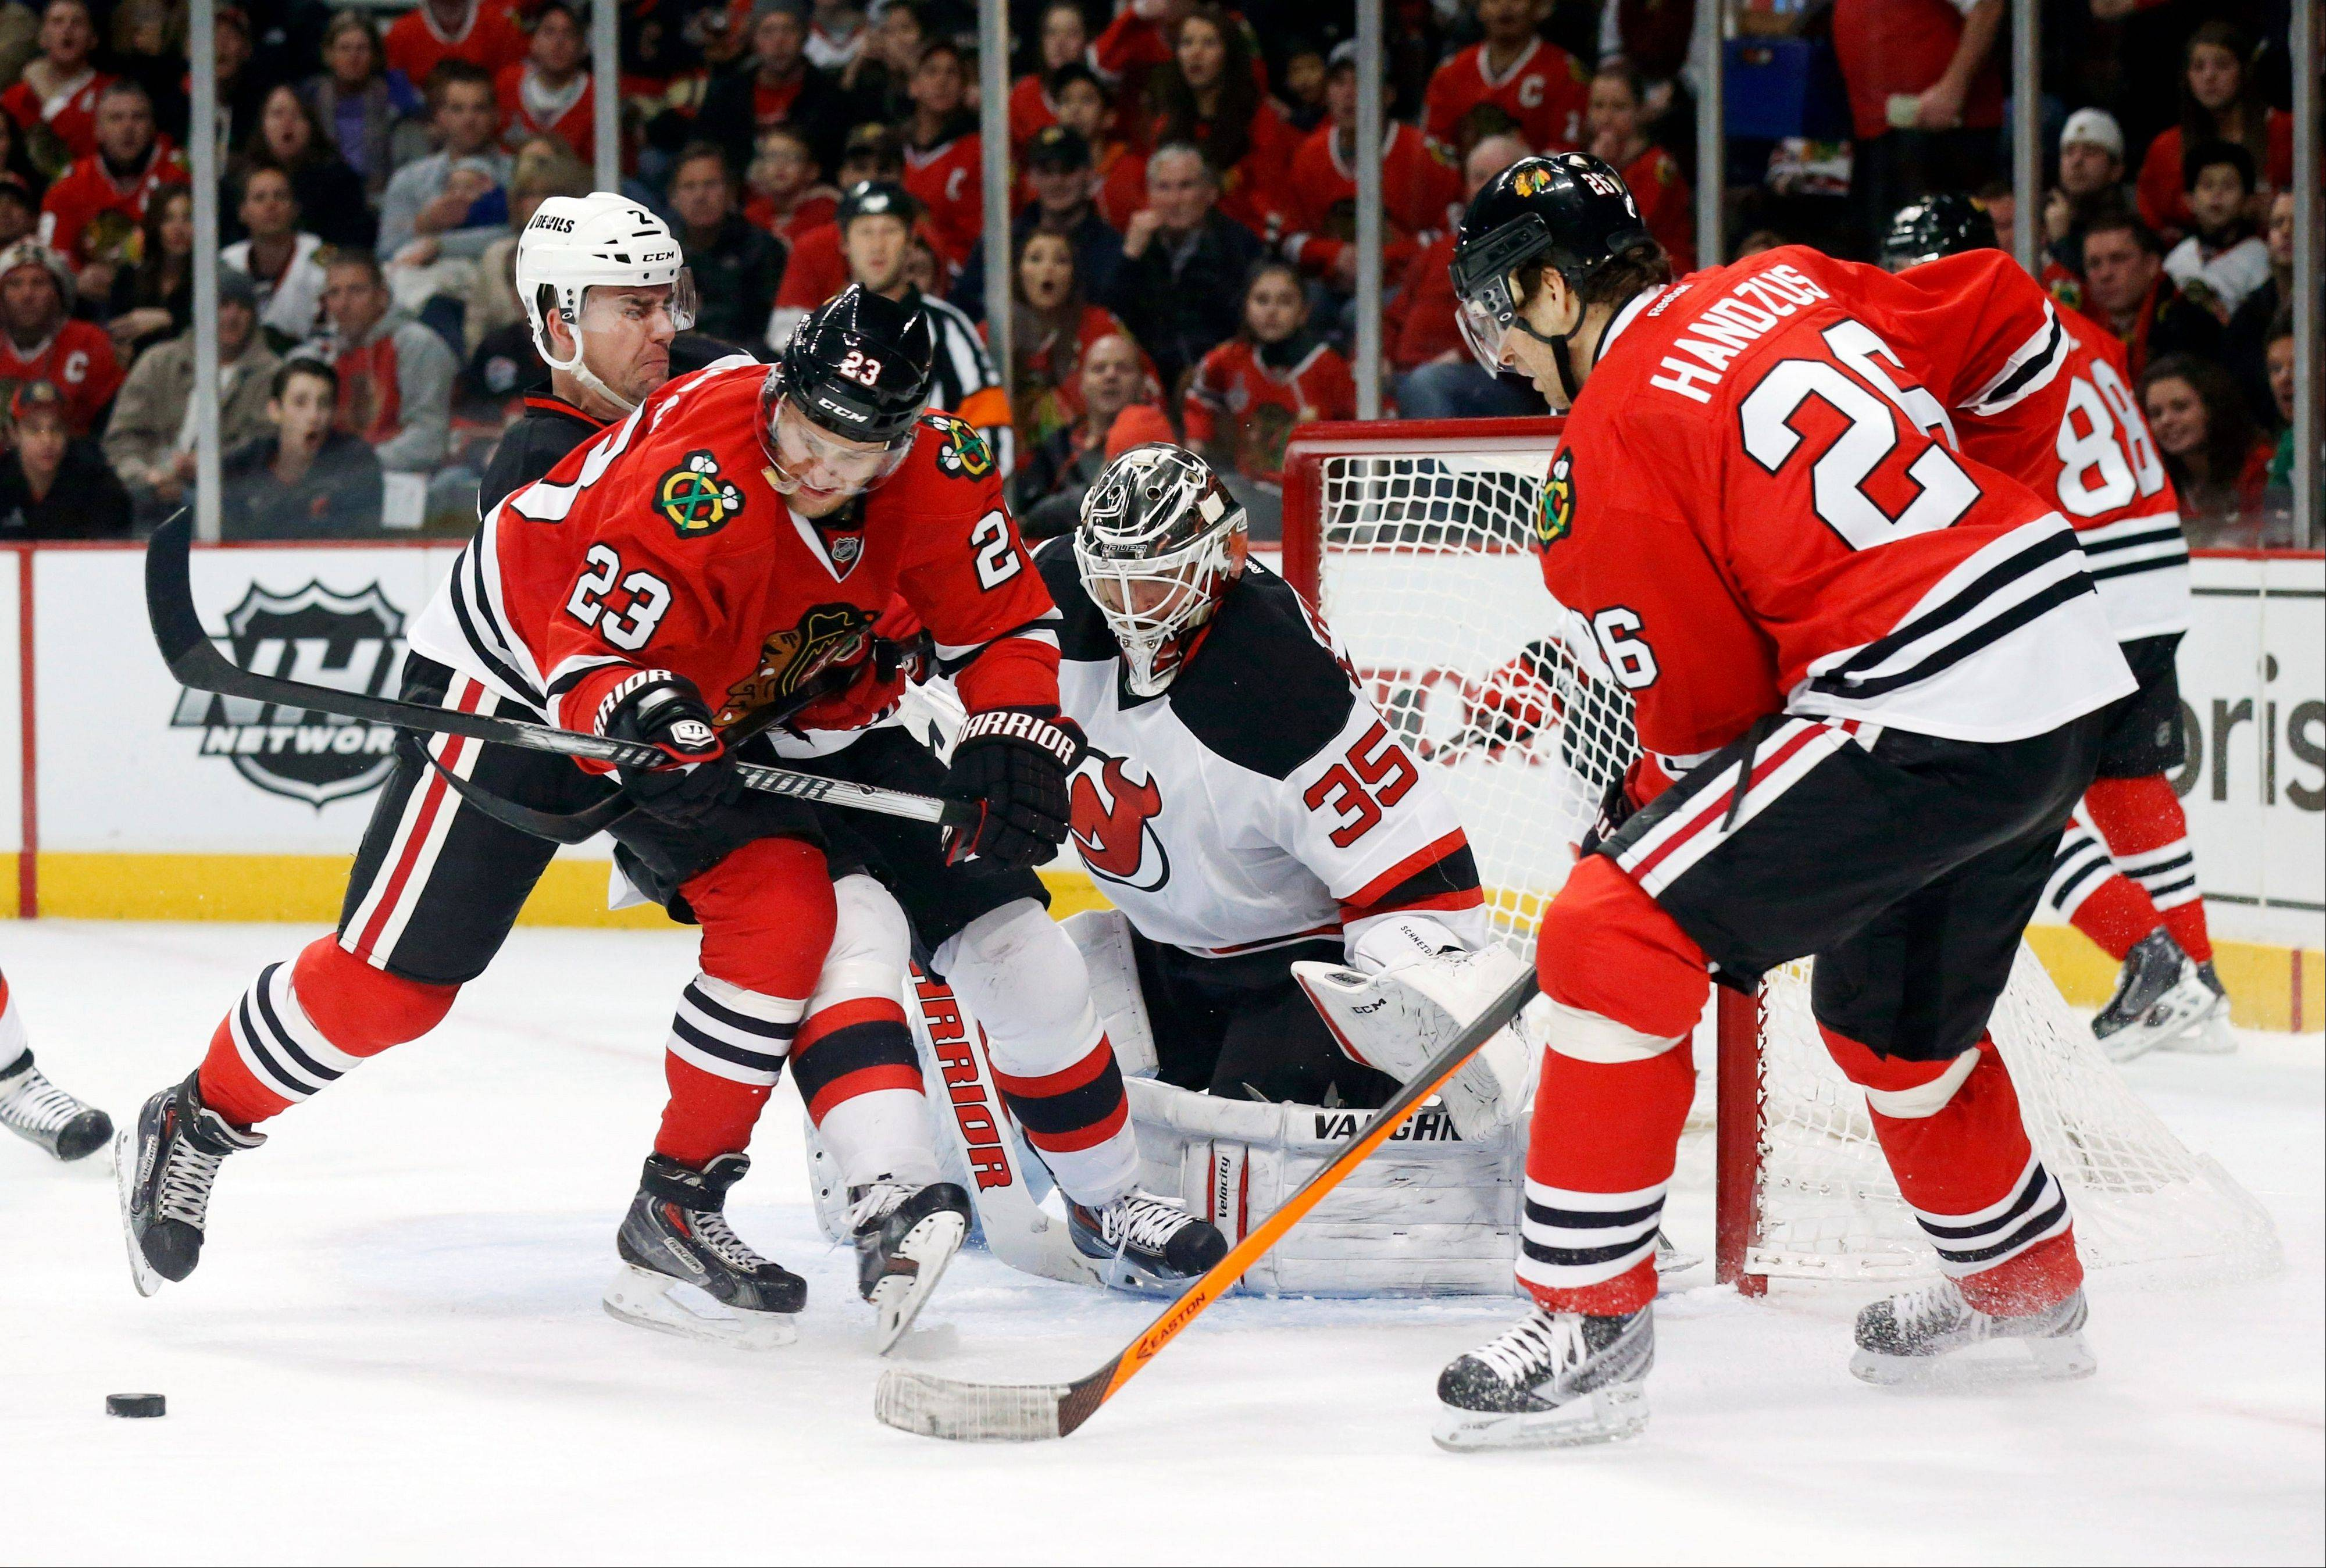 It's no surprise to the Blackhawks that Kris Versteeg, here trying to get a shot on Devils goalie Cory Schneider, has fit right in with the team a month after his return.